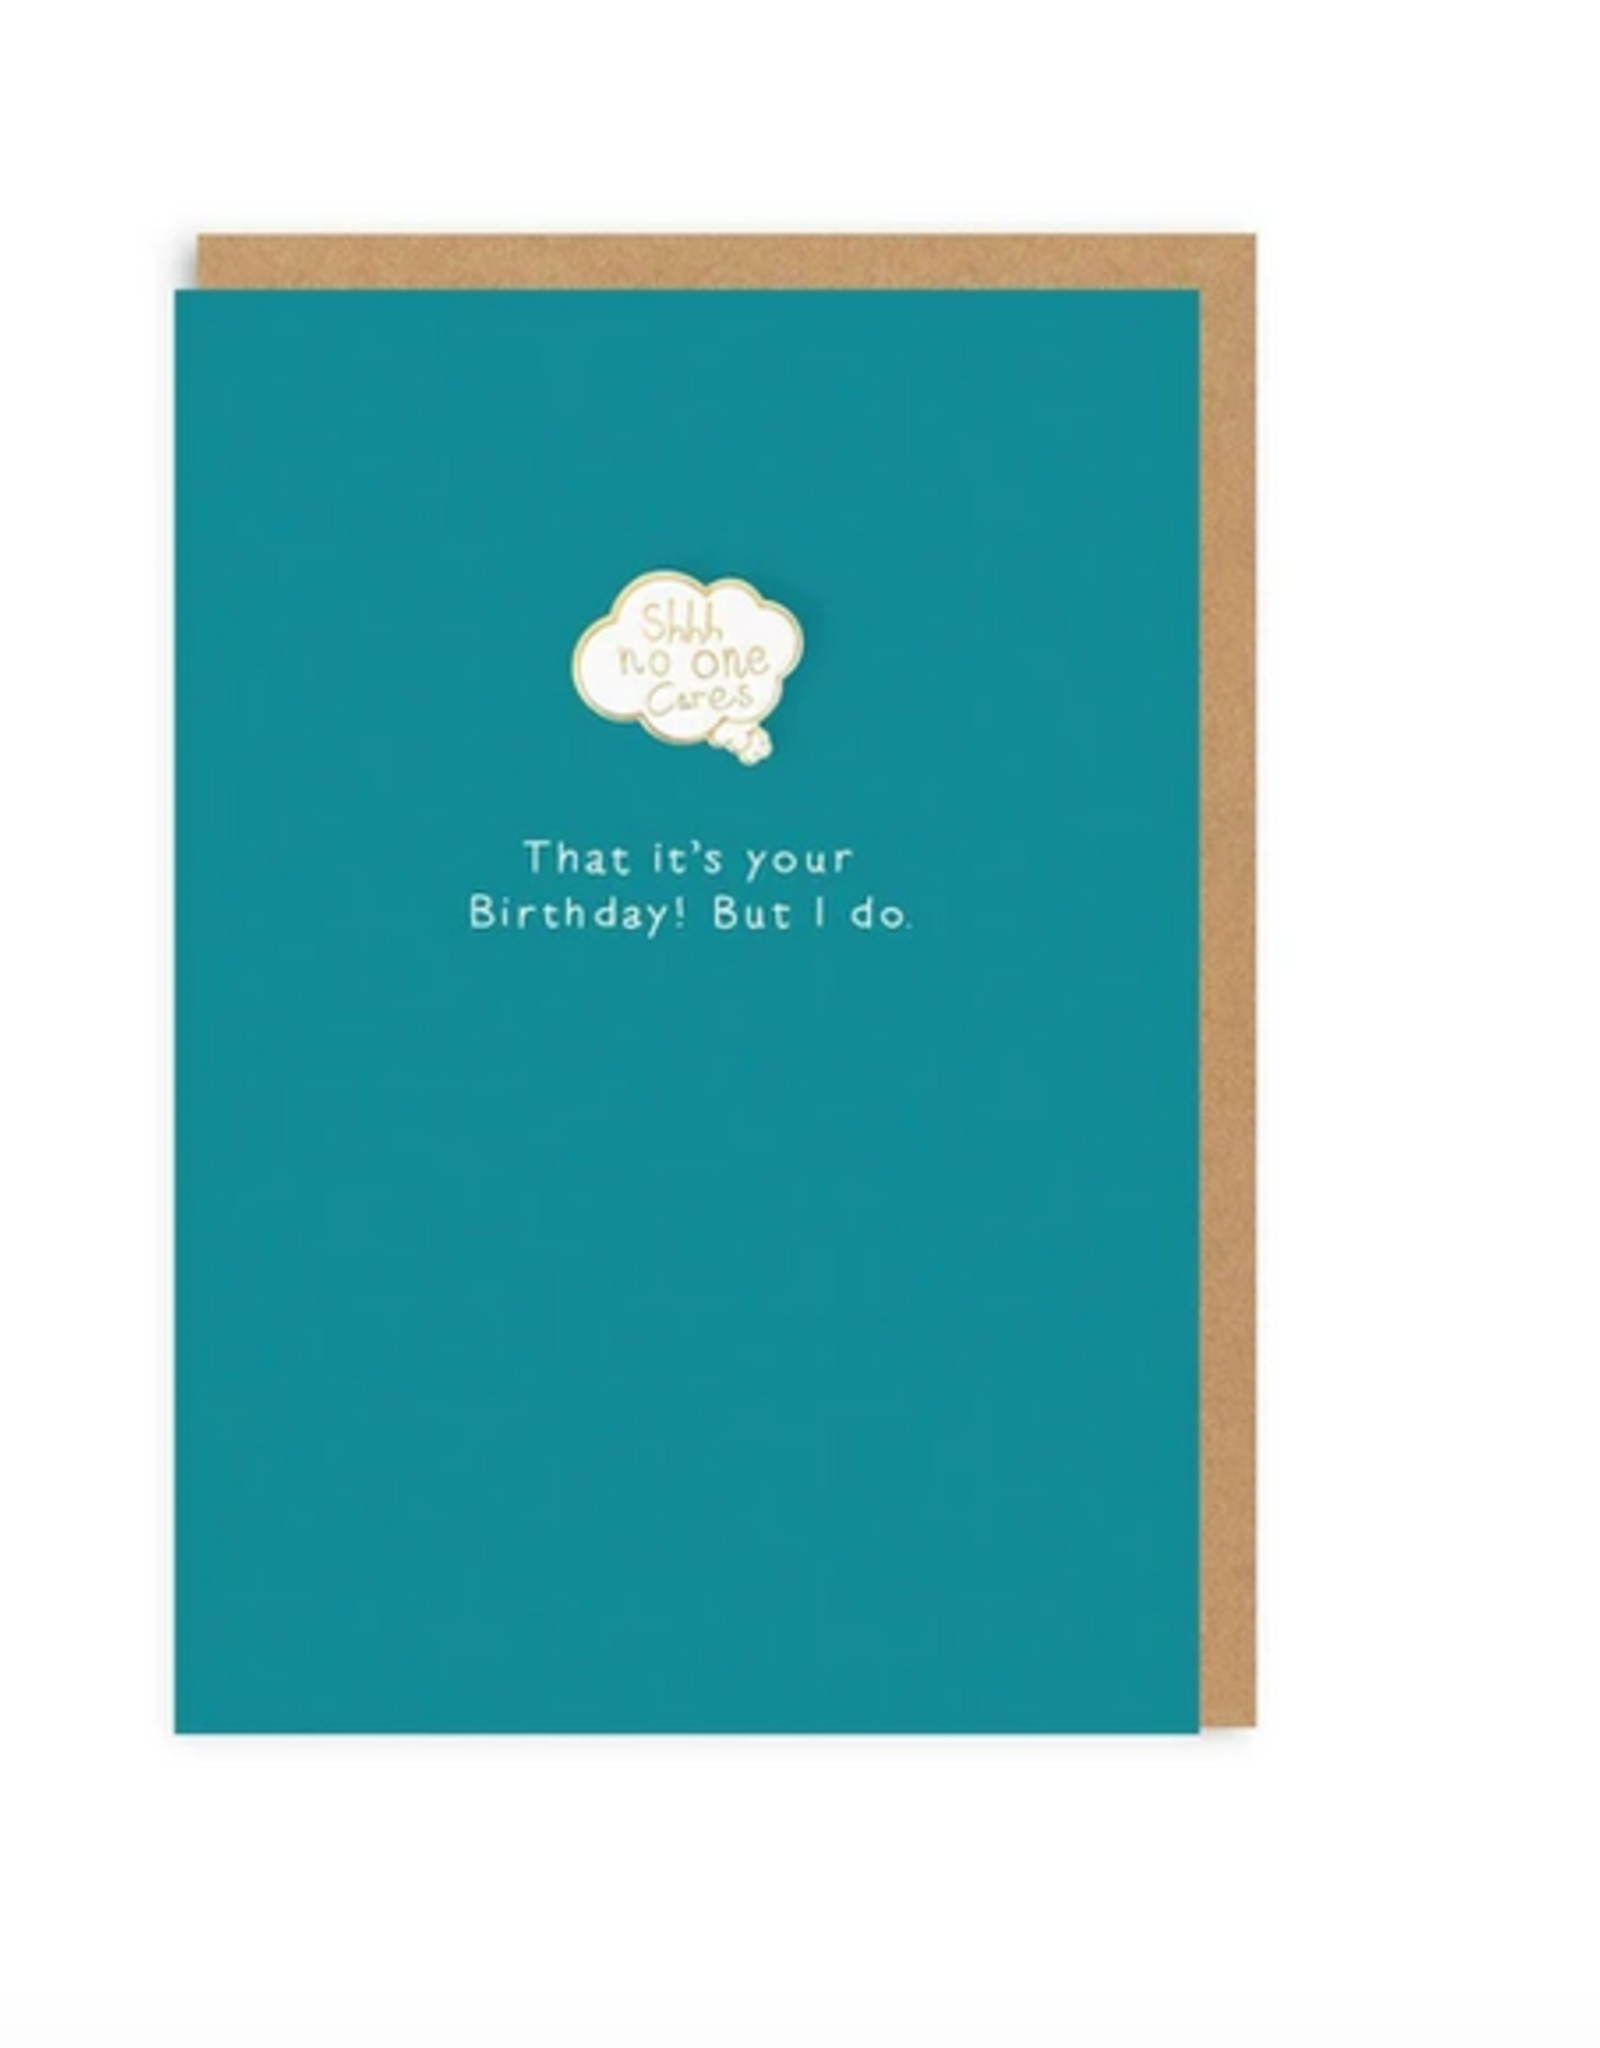 Ohh deer Card No one cares that it's your birhtday ! But i do